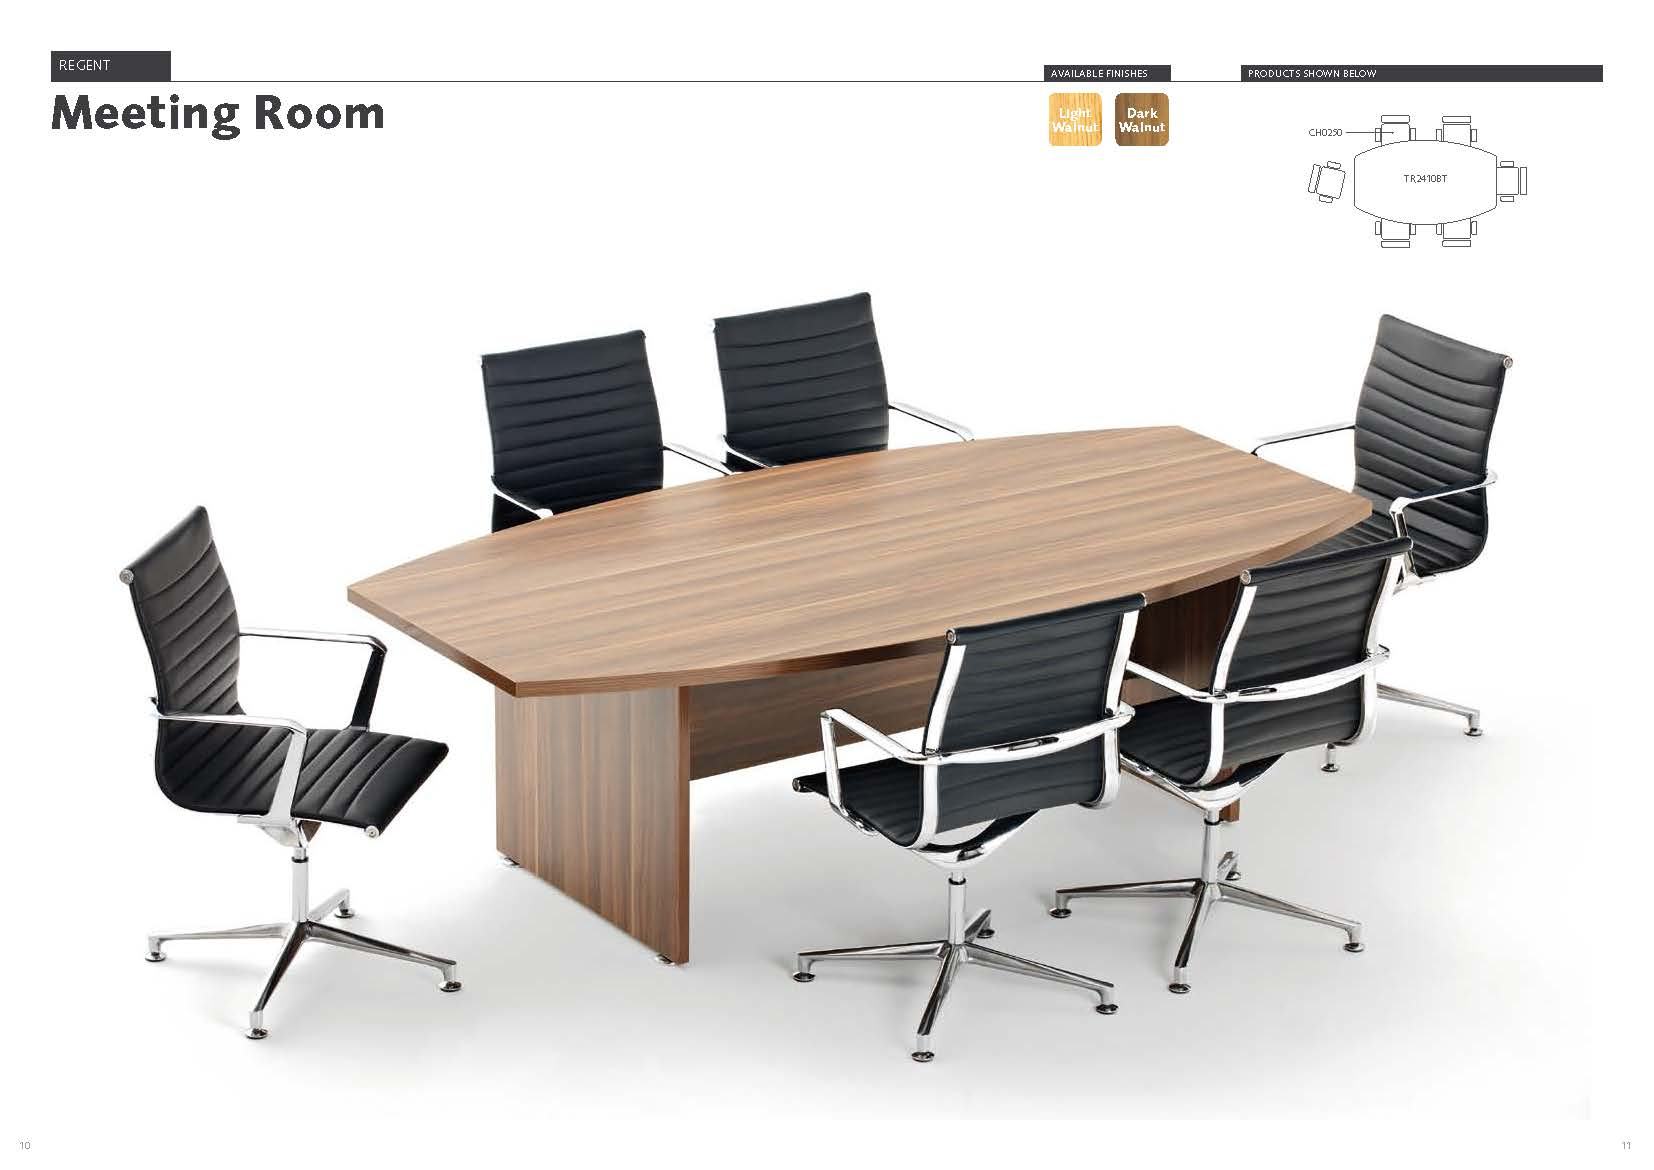 trueform room large trueformconcrete tables made meeting custom table conference by